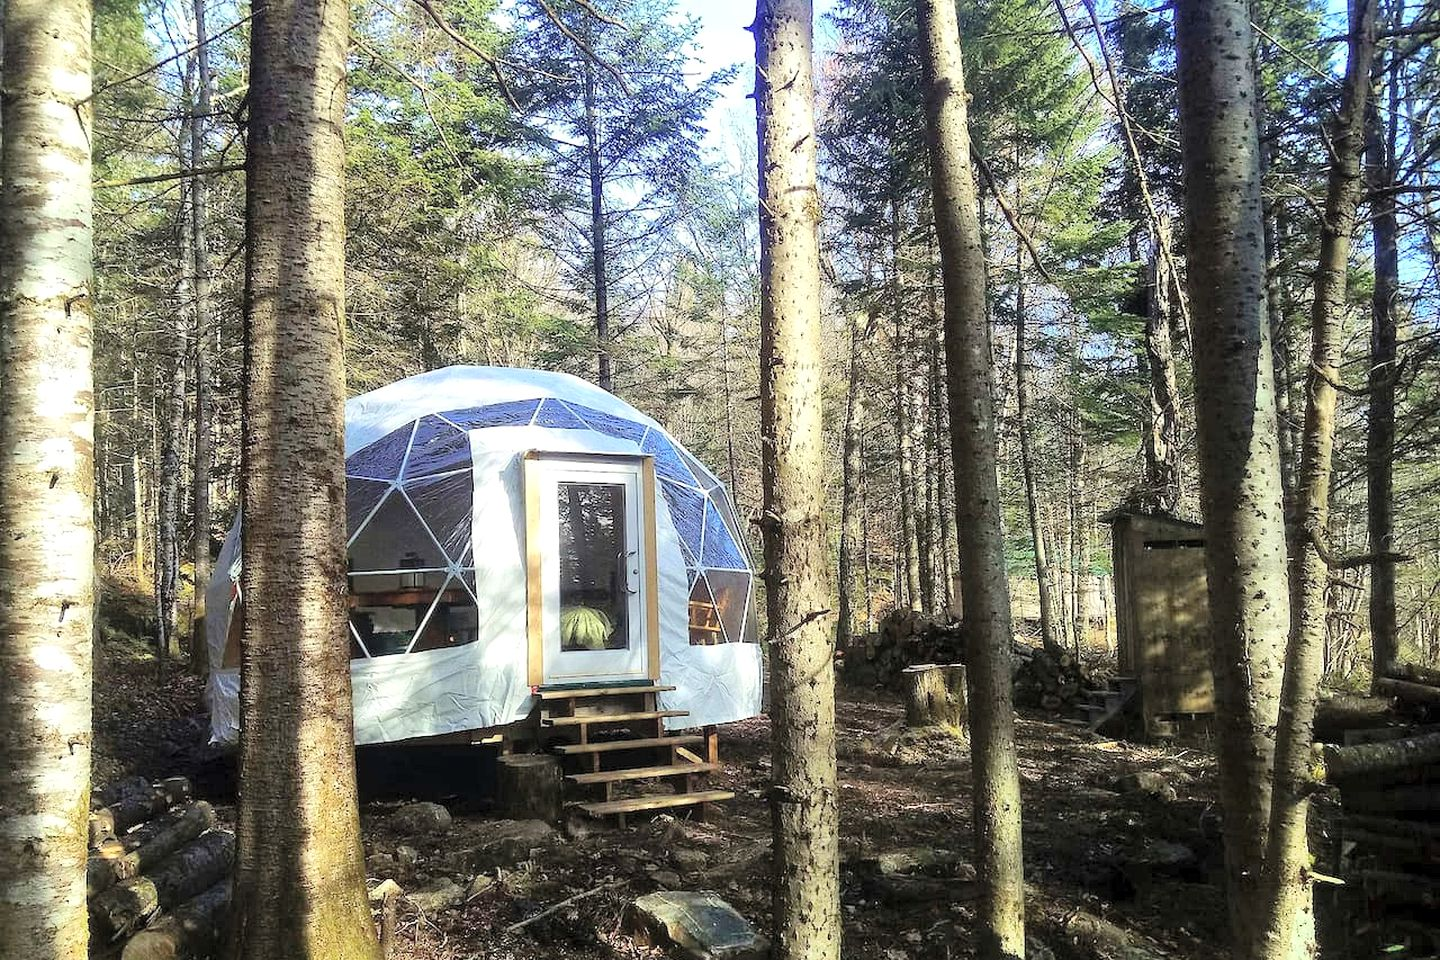 The dome rental for a great romantic getaway. Quebec glamping sites don't come more perfect for luxury camping in Canada